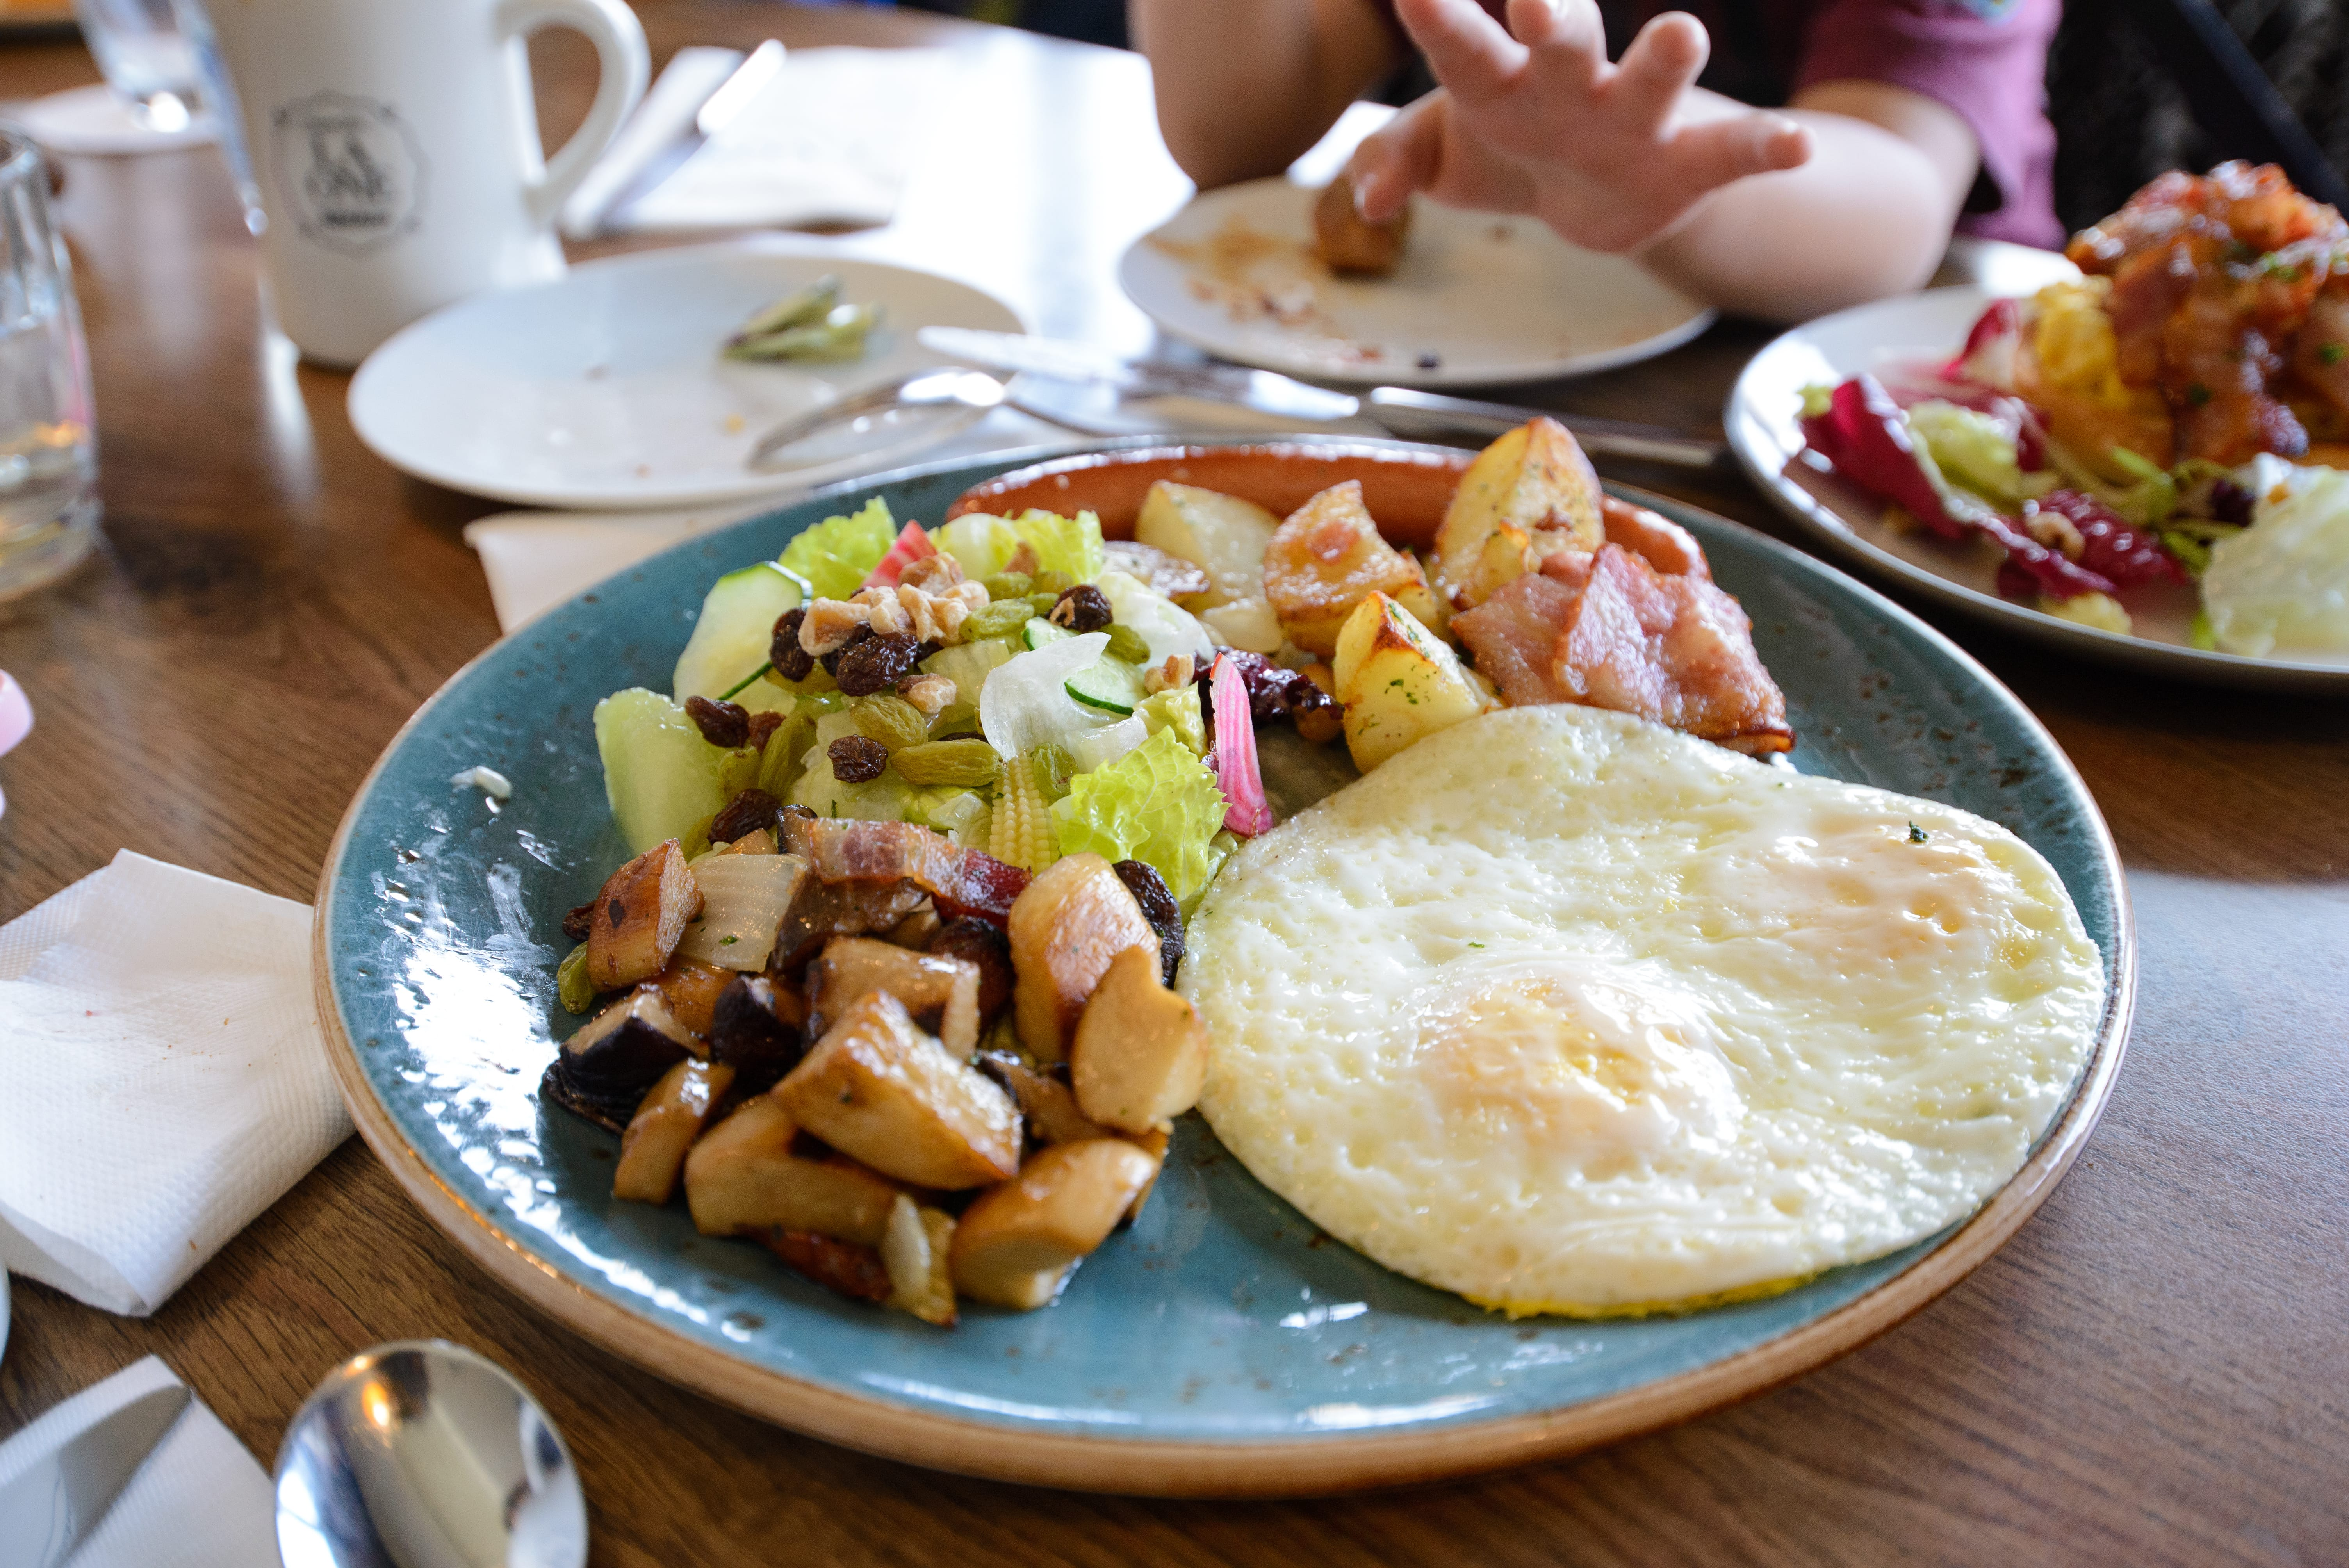 Sunny Eggs with Potato, Mushroom, Bacon, Sausage, Salad and Bread